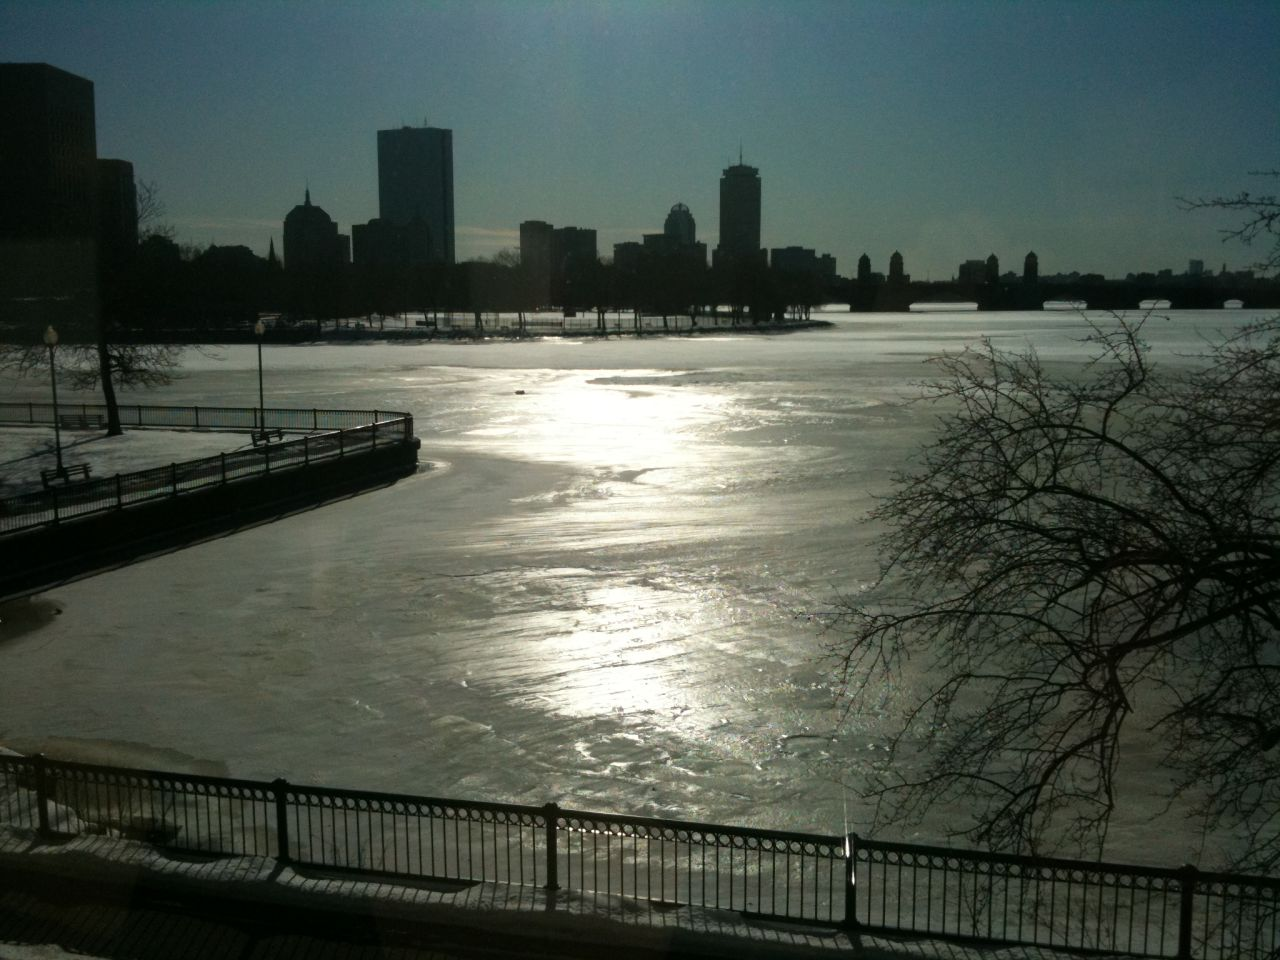 Authorities warn that while the Charles River might look frozen, the ice is unstable and dangerous to walk on. (James Walsh/Flickr)